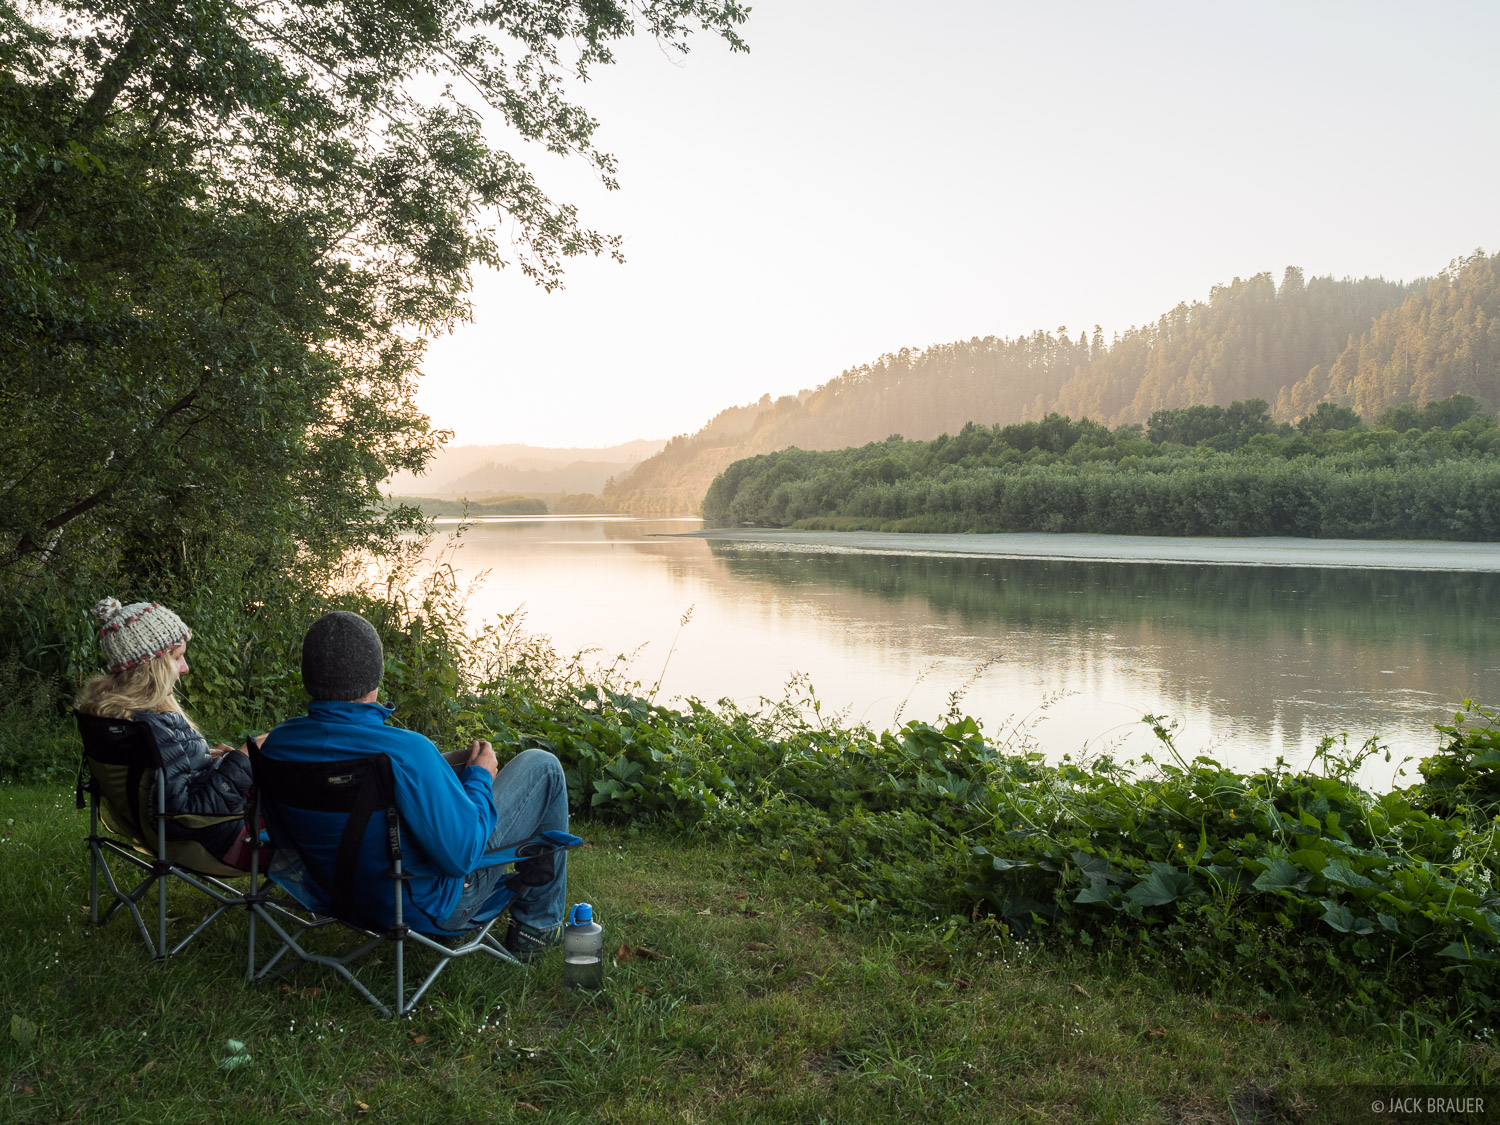 Our campsite at a tranquil RV park along the Klamath River in northern California.